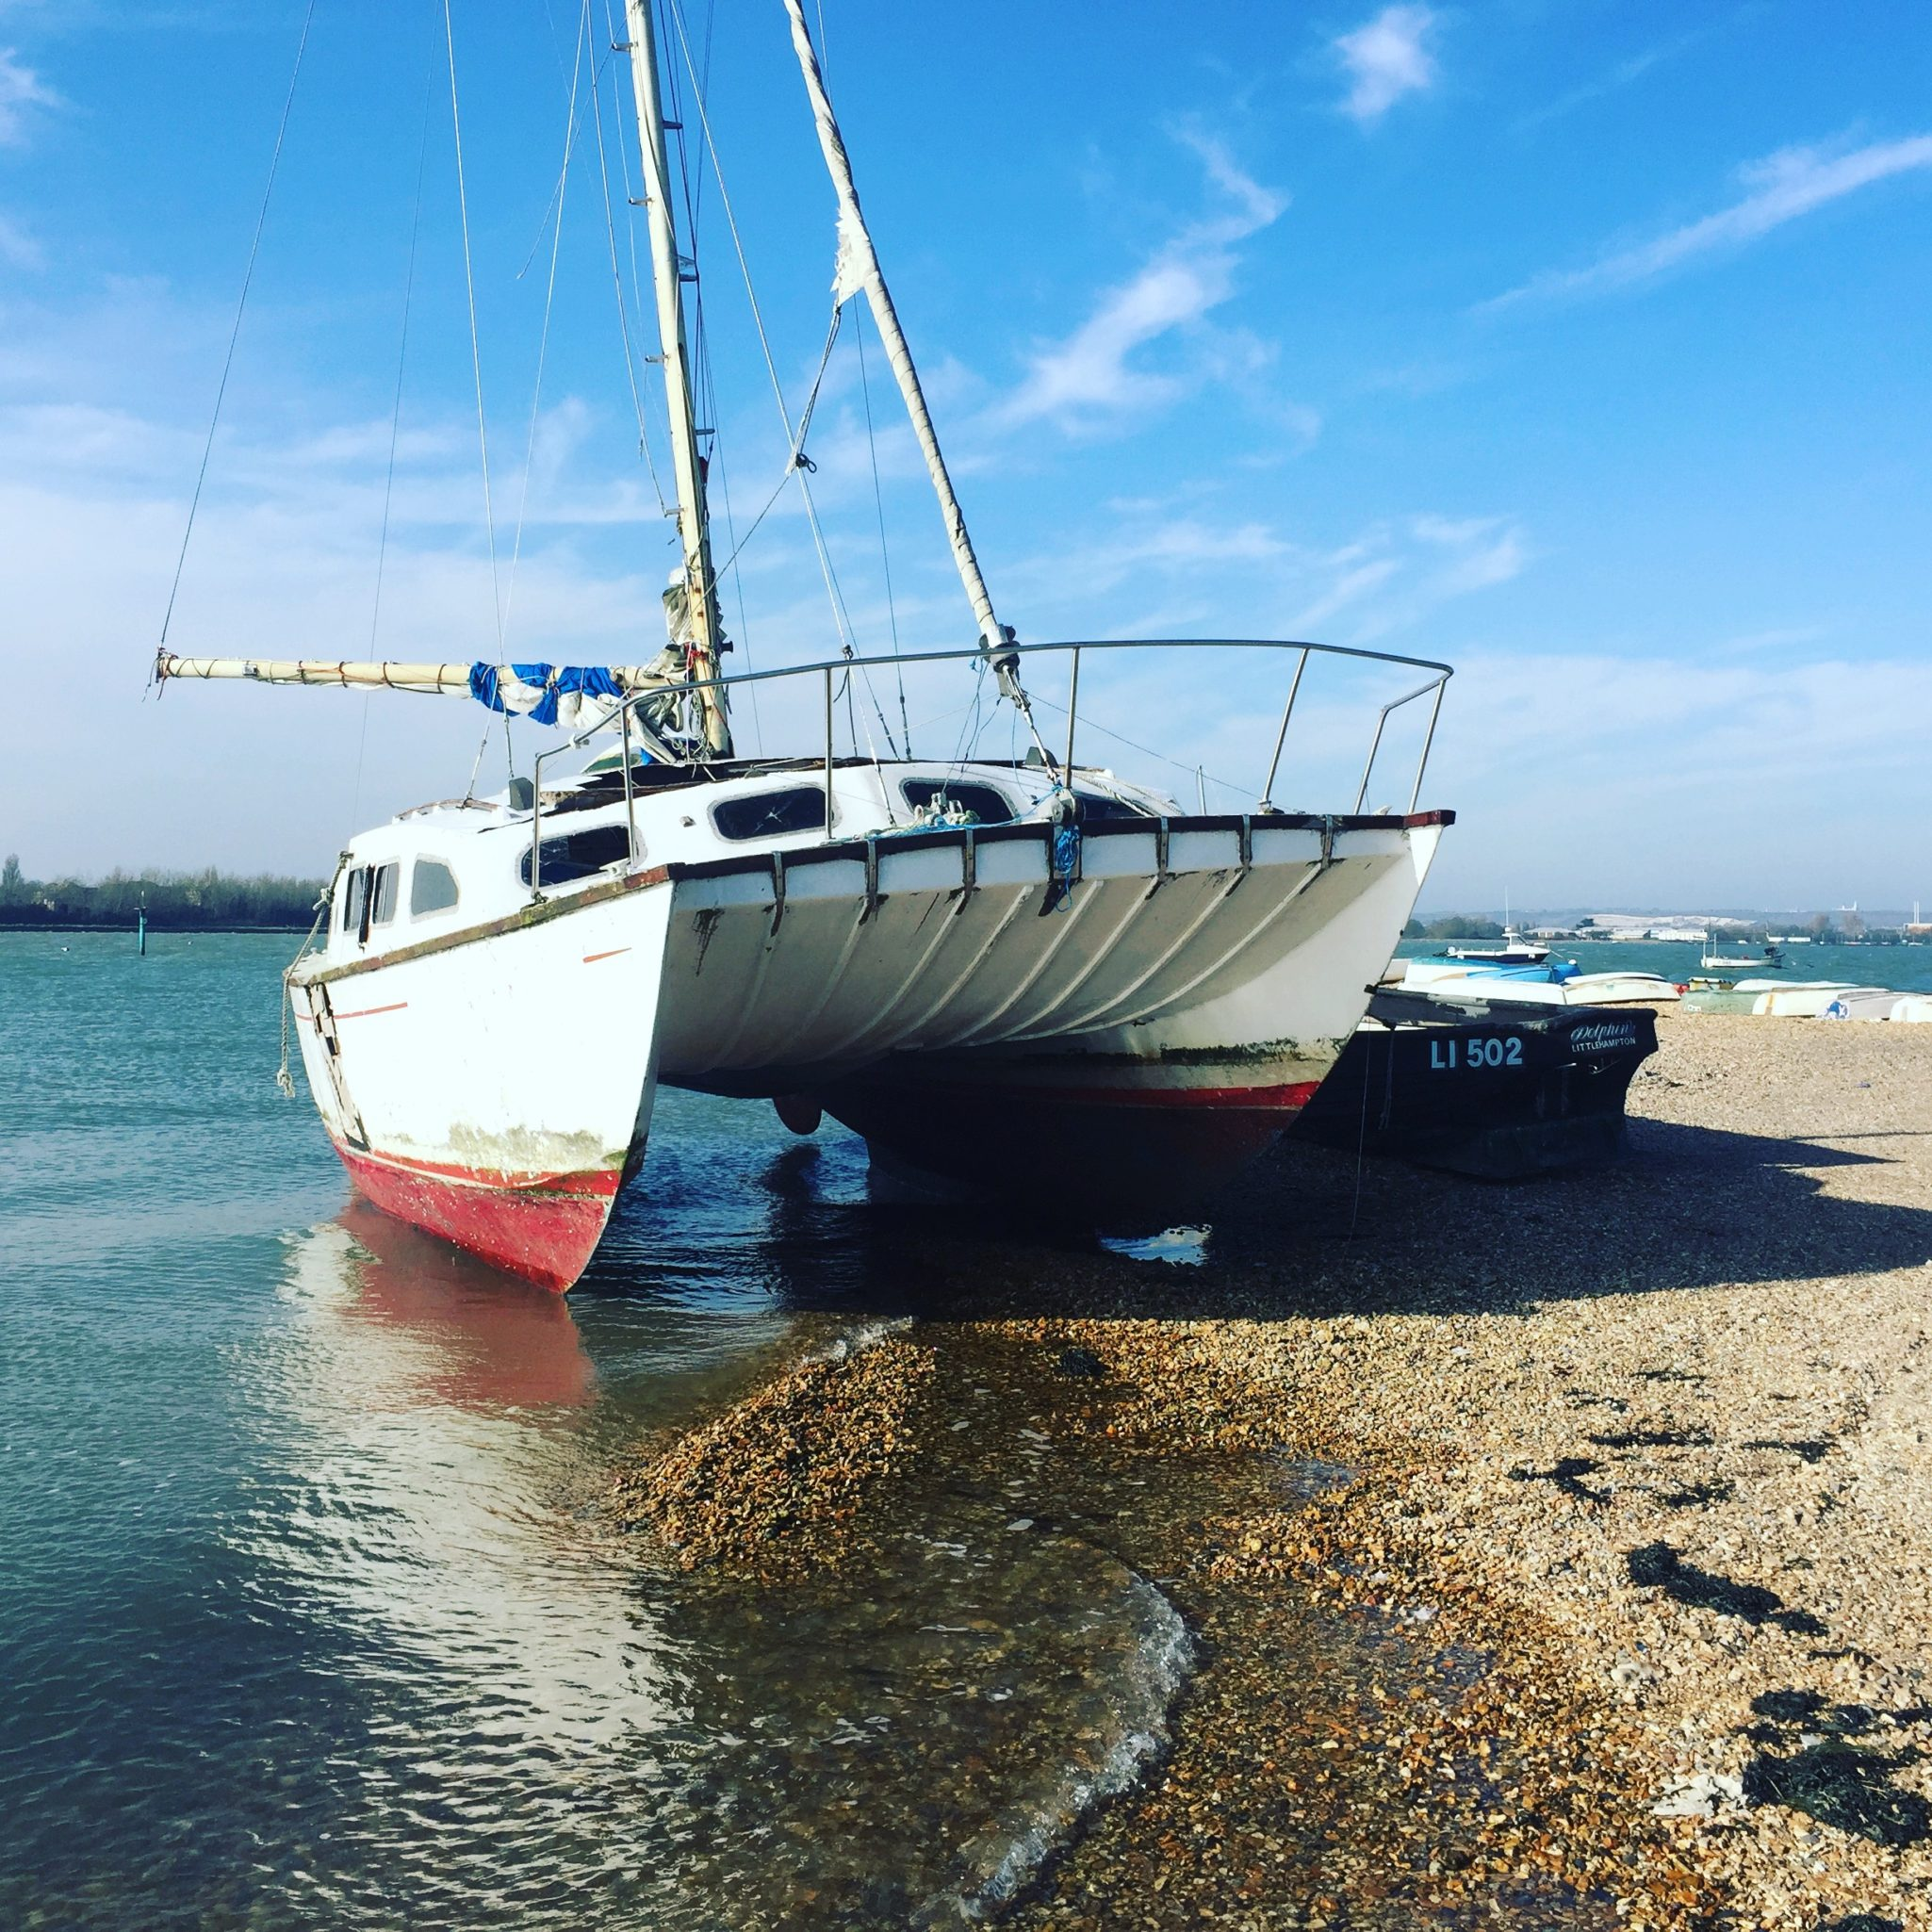 Boatbreakers News - Abandoned Boat on Eastney Beach